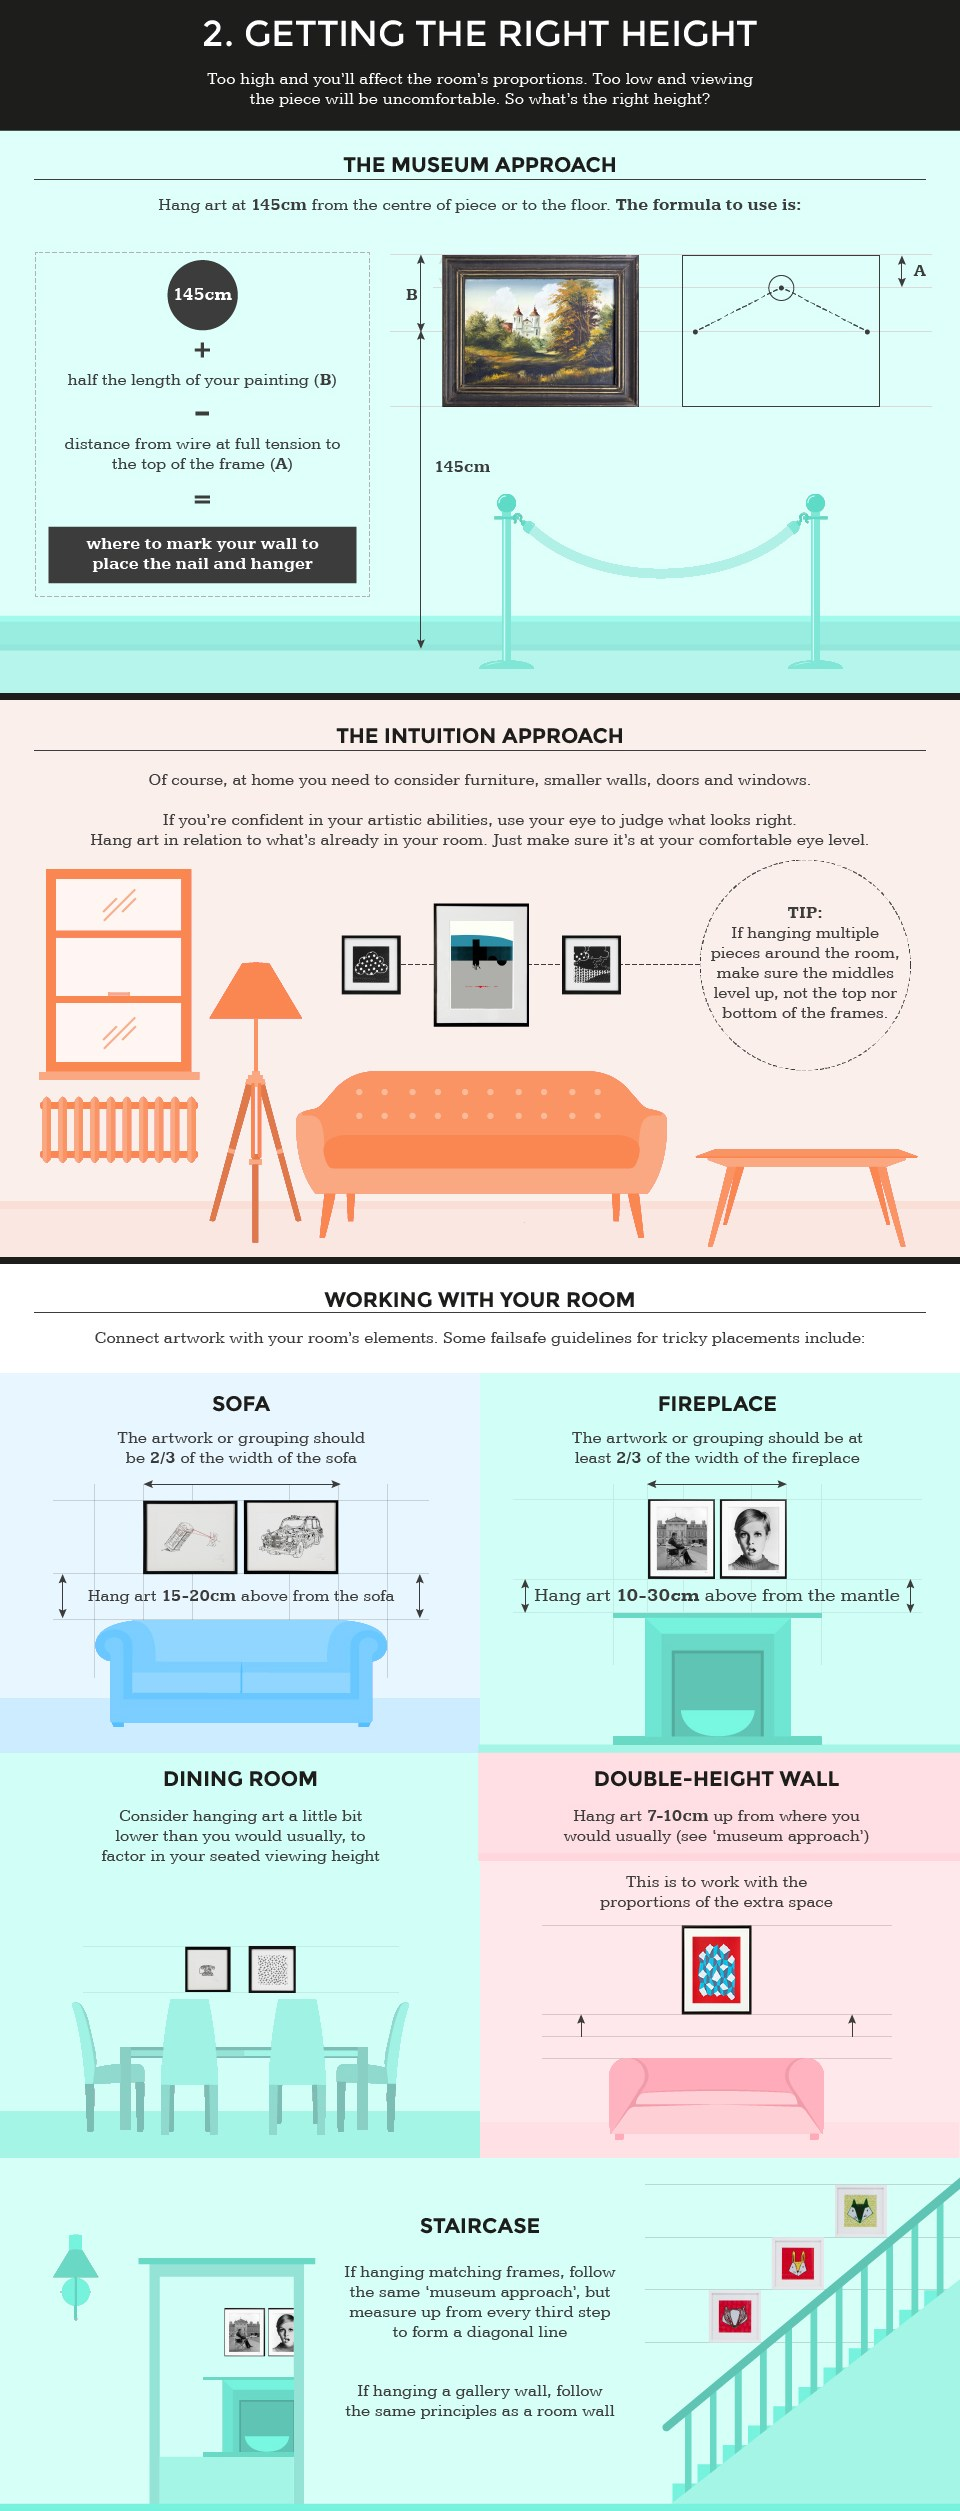 Guide to getting the right height when hanging pictures